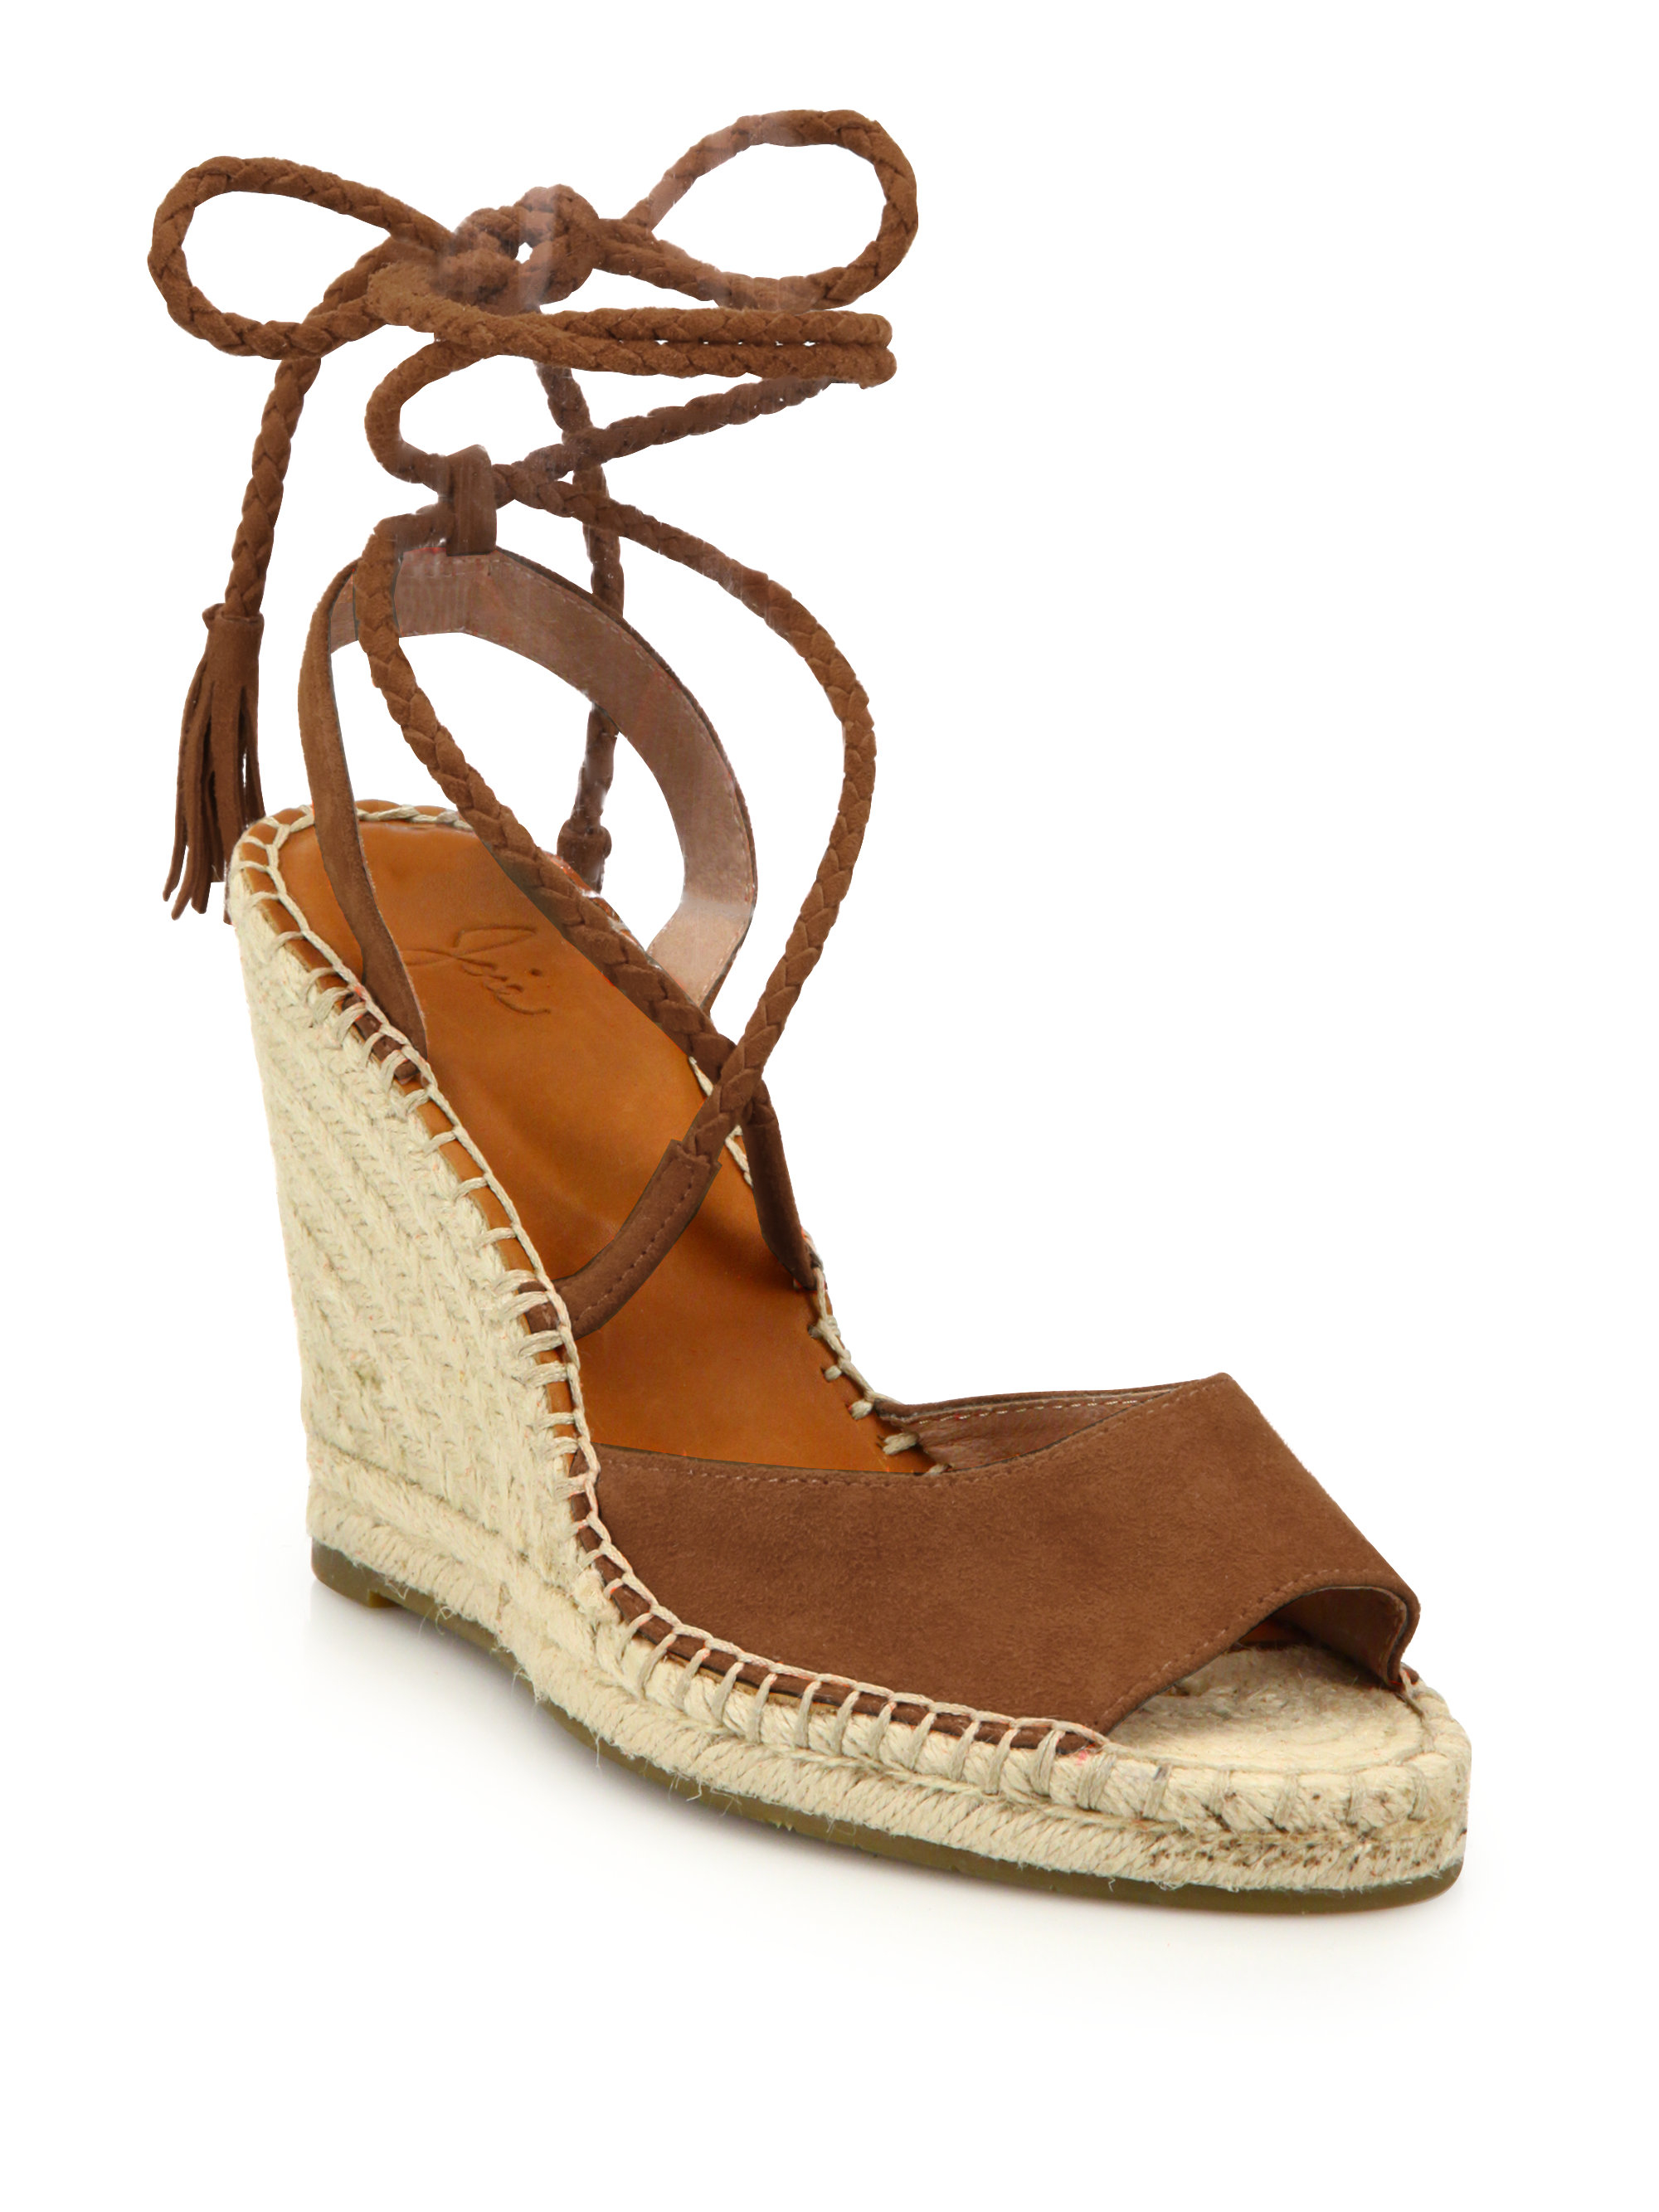 f0de7aab713b9 Lyst - Joie Phyllis Suede Lace-up Espadrille Wedge Sandals in Brown